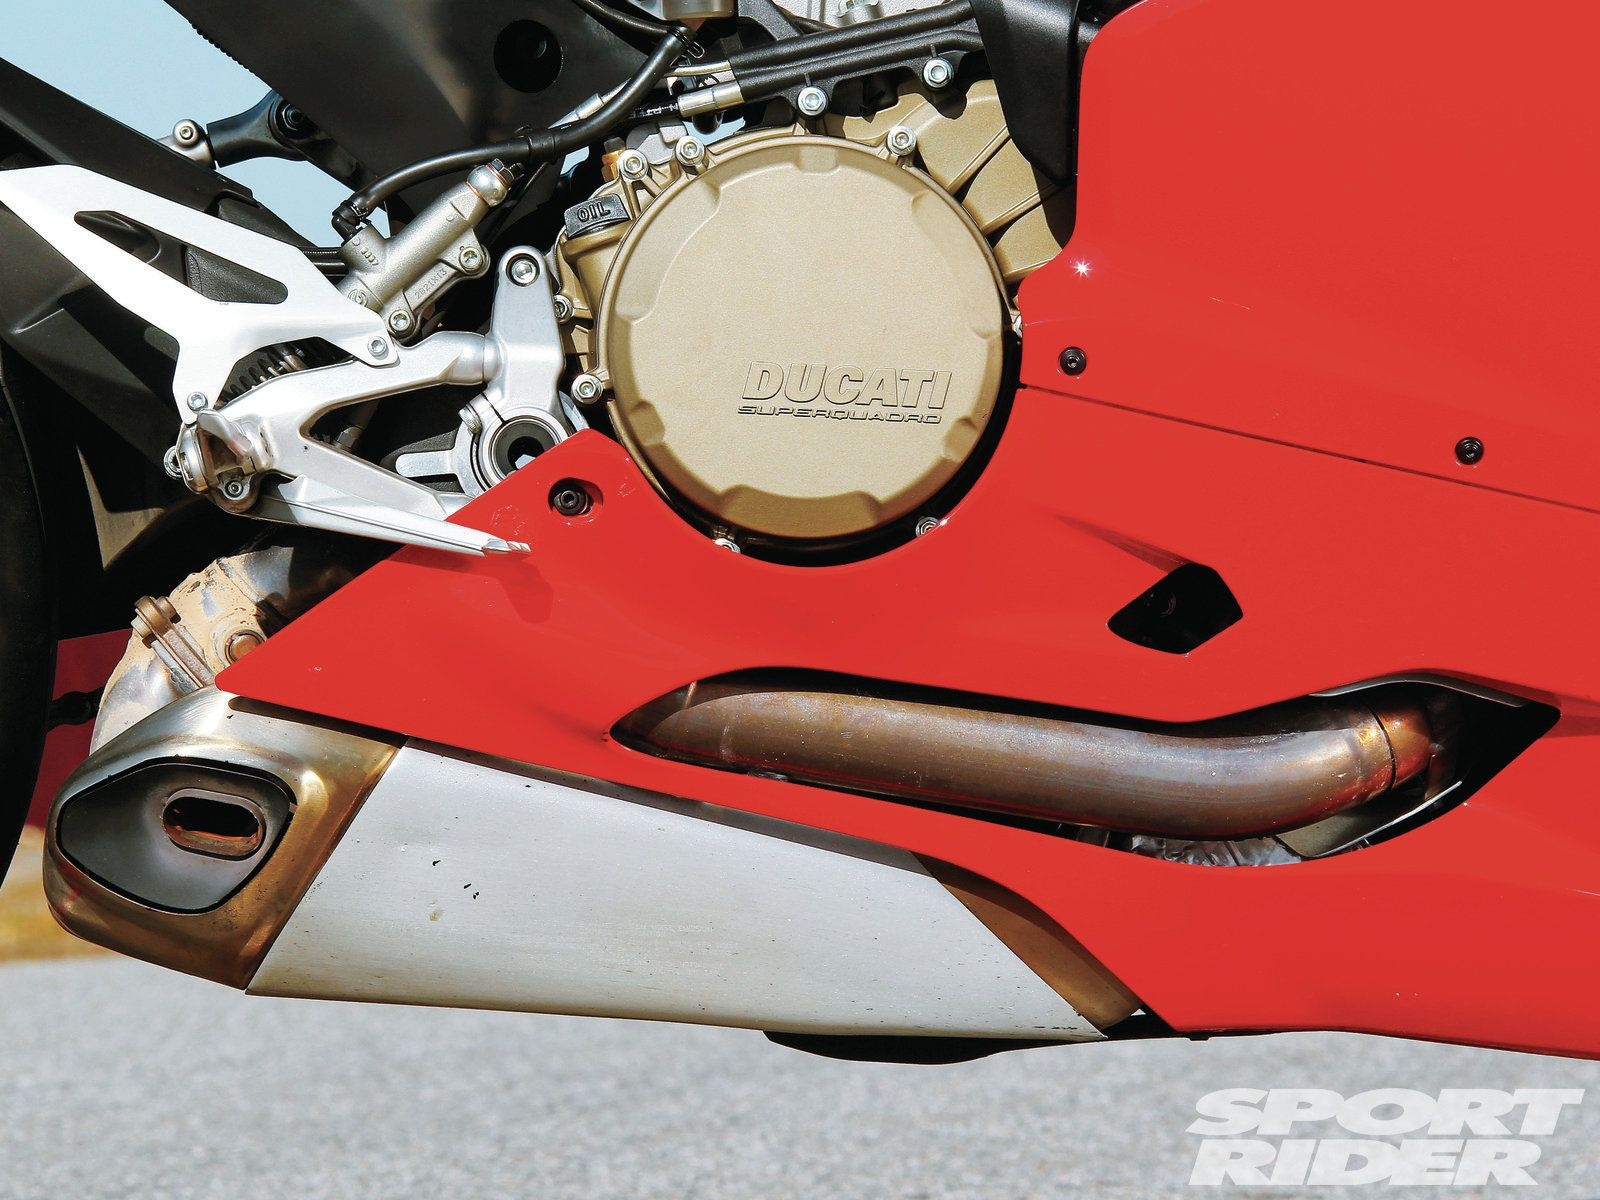 2012 Ducati 1199 Panigale S | Cycle World